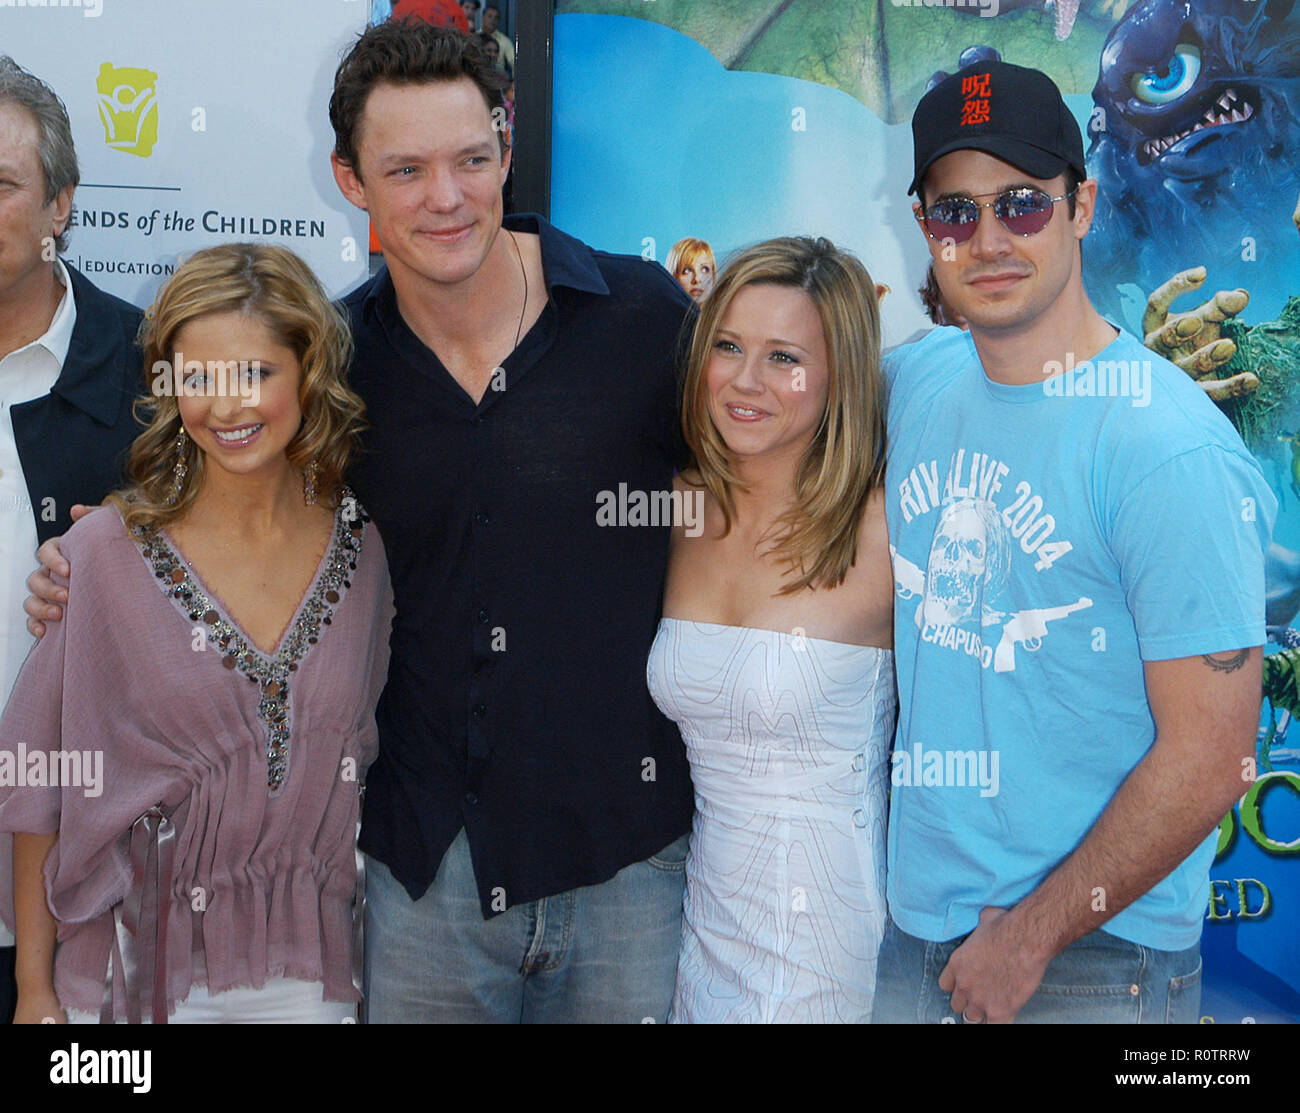 The Cast Sarah Michelle Gellar Matthew Lillard Linda Cardellini And Freddie Prinze Jr At The Premiere Of Scooby Doo 2 At The Chinese Theatre In Los Stock Photo Alamy